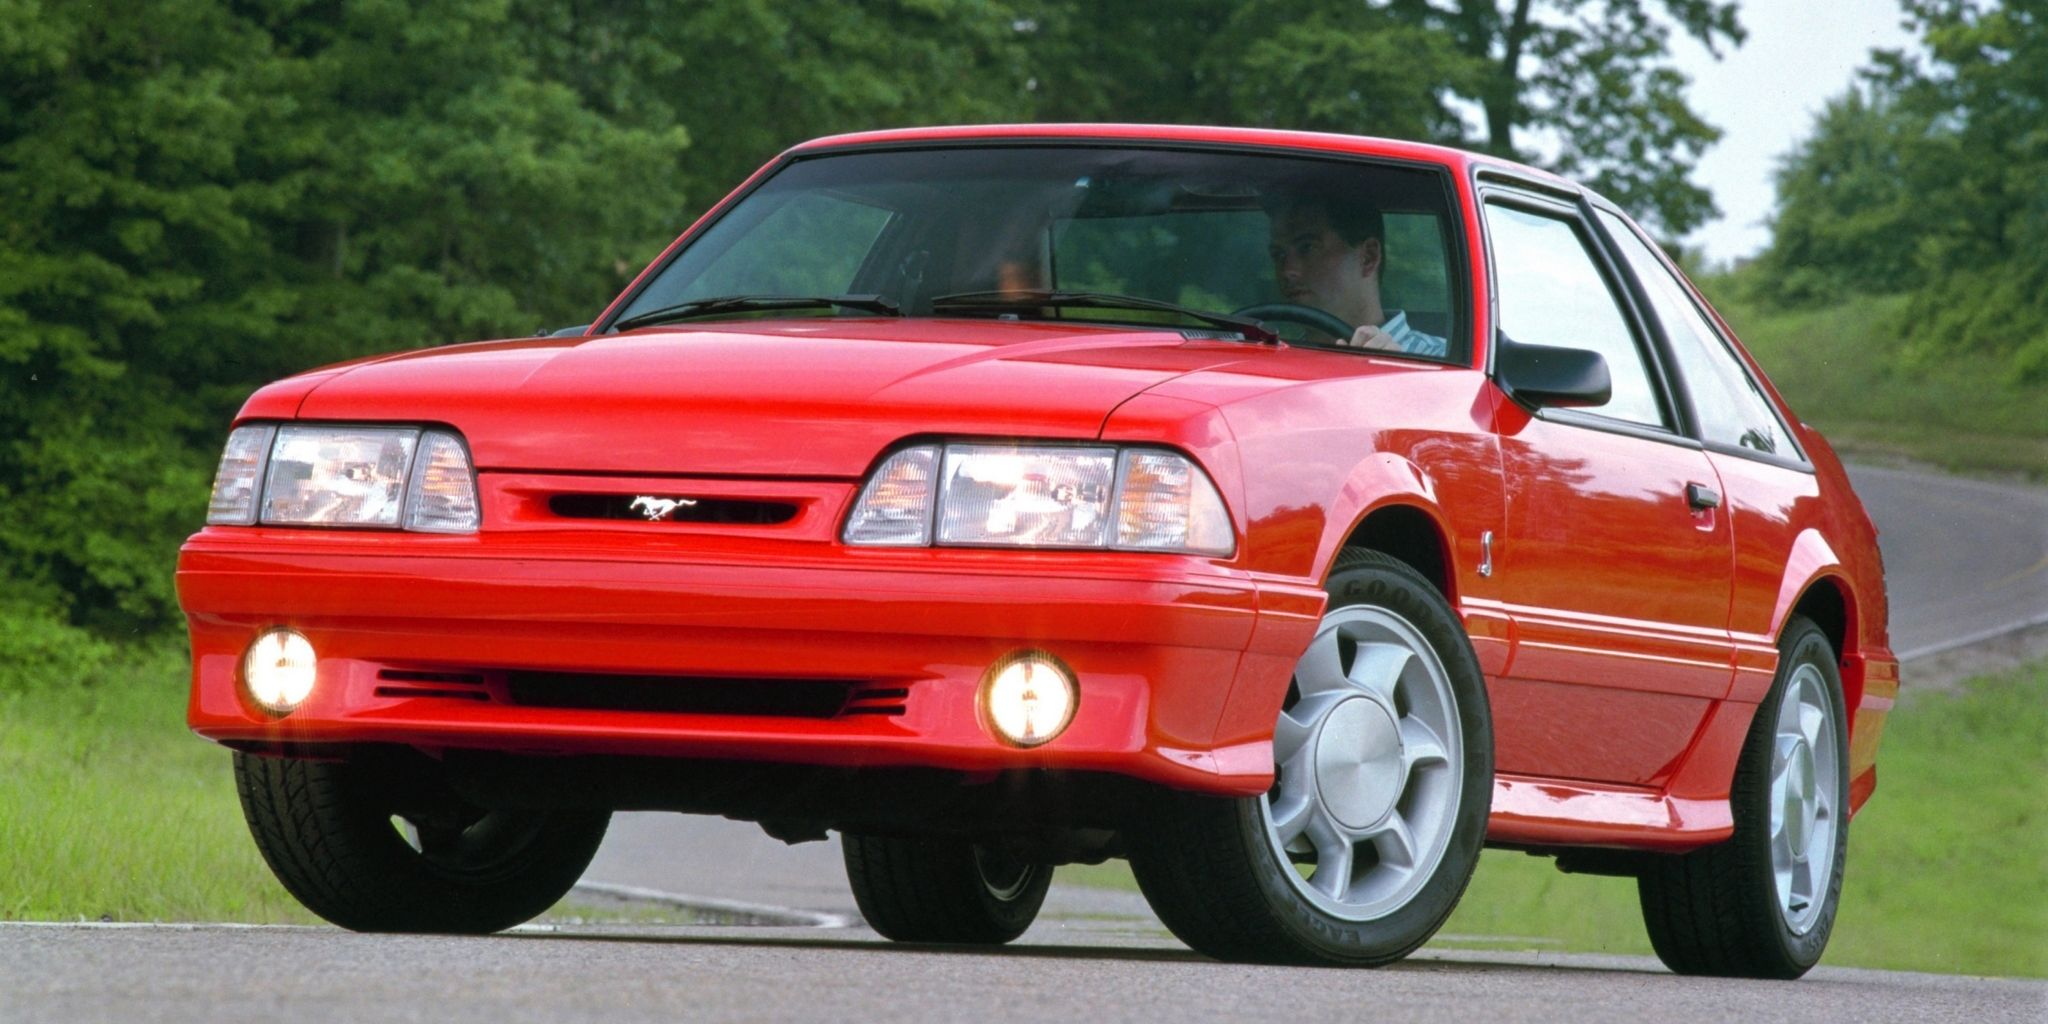 With the 1993 ford mustang cobra the aging fox body kept kicking ass